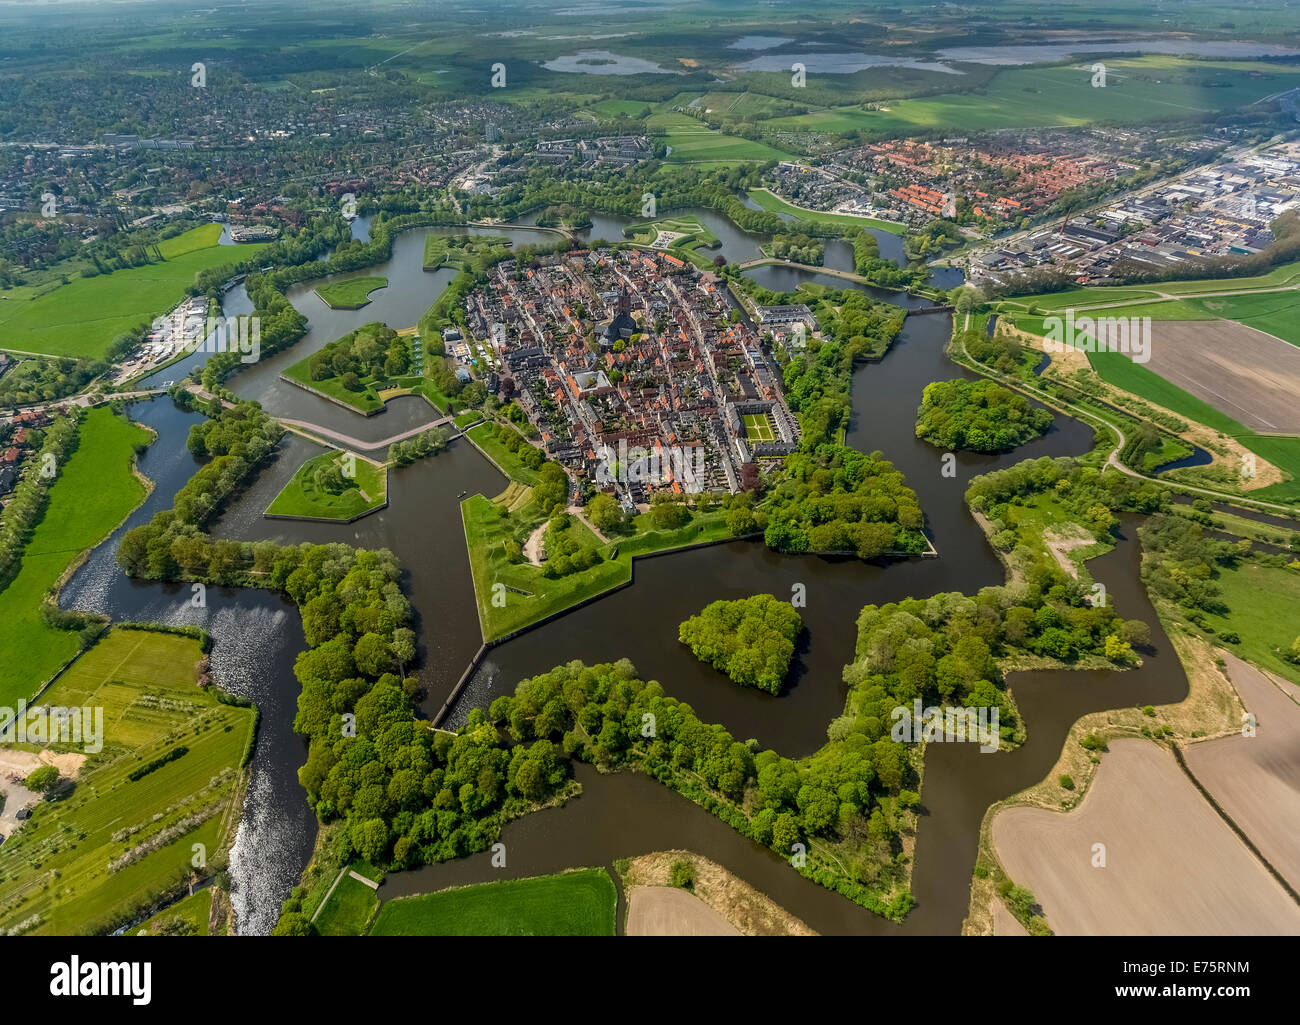 Aerial view, Naarden, fortified town, Province of North-Holland, Netherlands - Stock Image